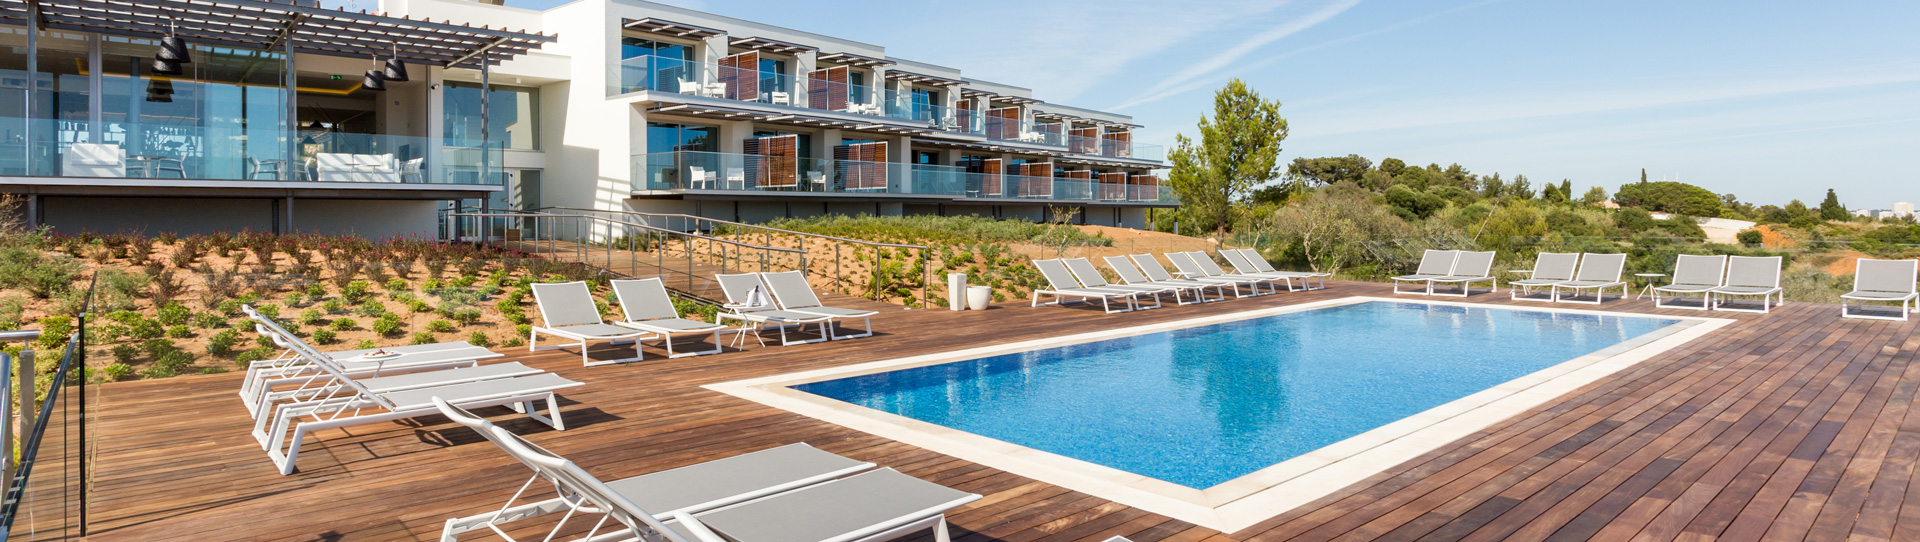 Onyria Palmares Beach House Hotel - Photo 1